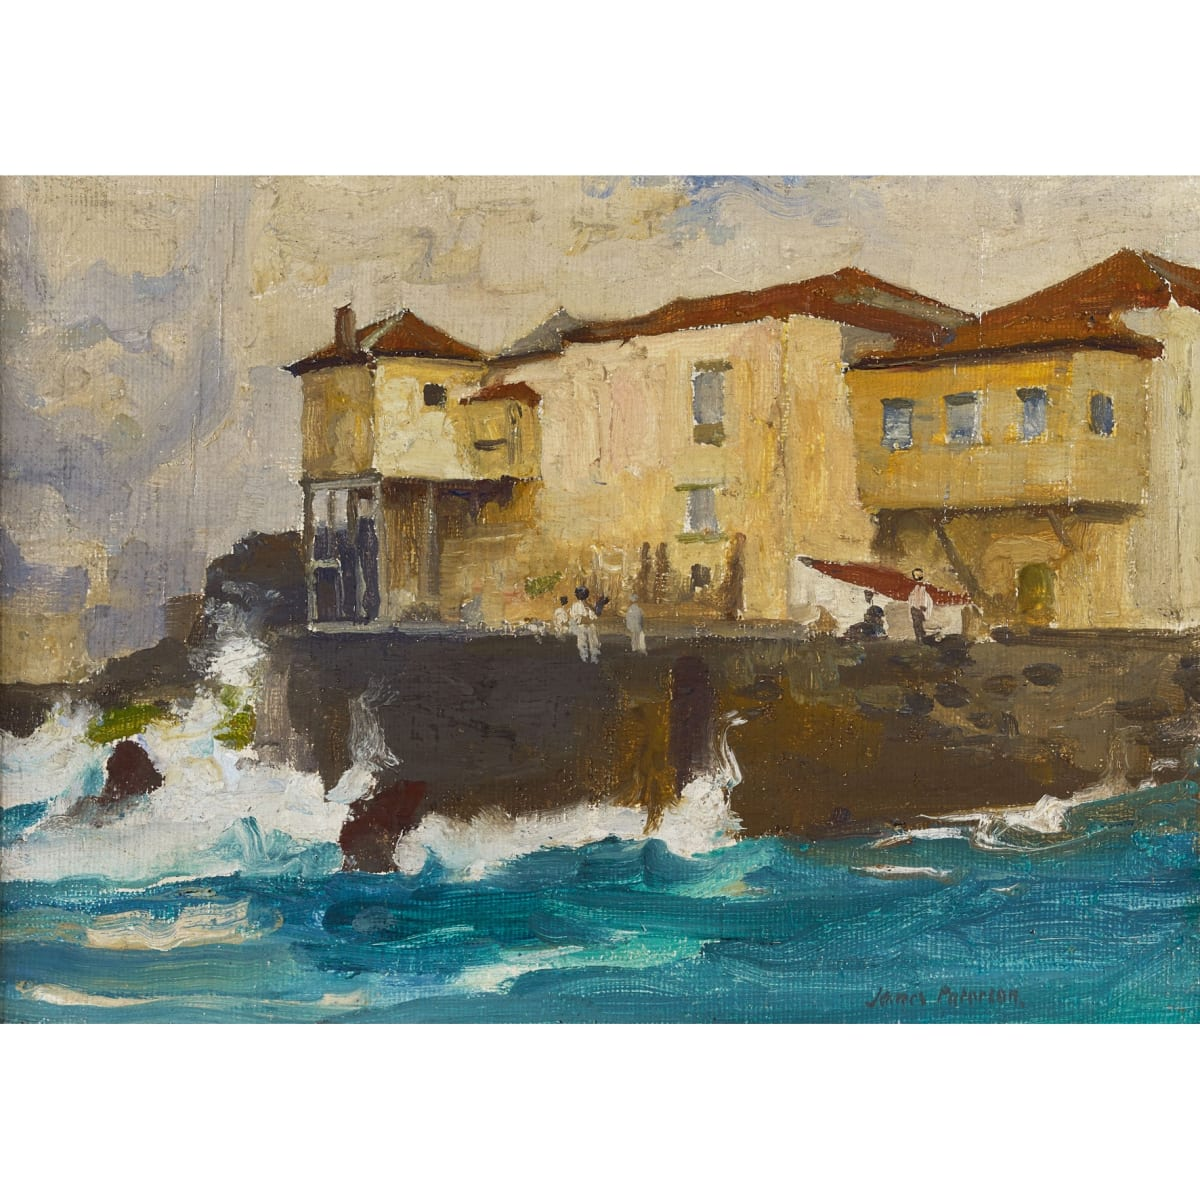 James Paterson Tenerife - Coming into Port - Green Seas signed oil on canvas 7 x 10 inches